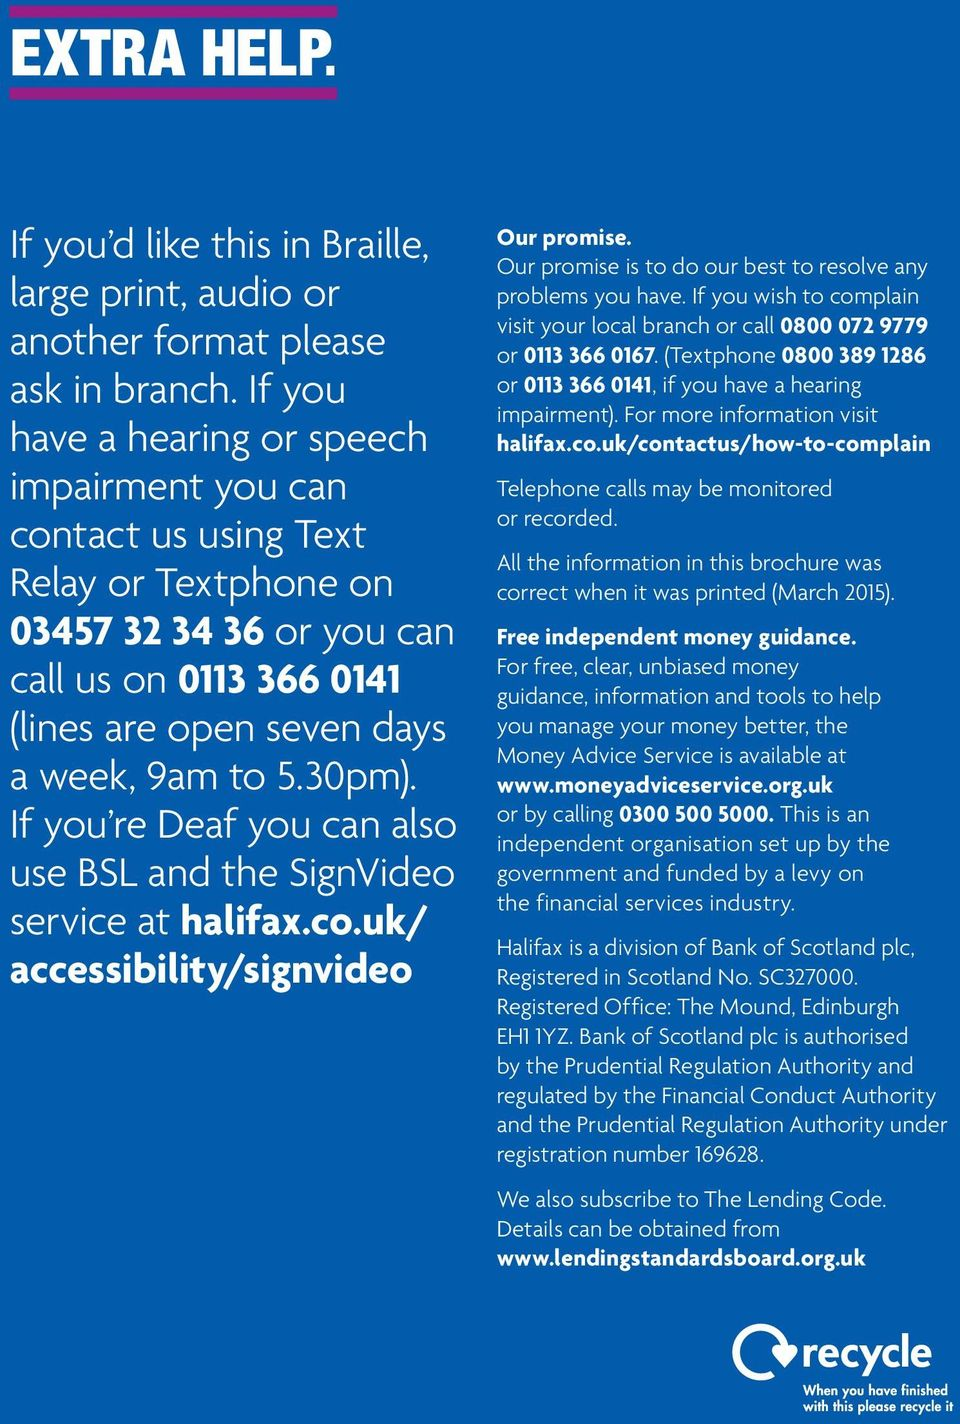 If you re Deaf you can also use BSL and the SignVideo service at halifax.co.uk/ accessibility/signvideo Our promise. Our promise is to do our best to resolve any problems you have.